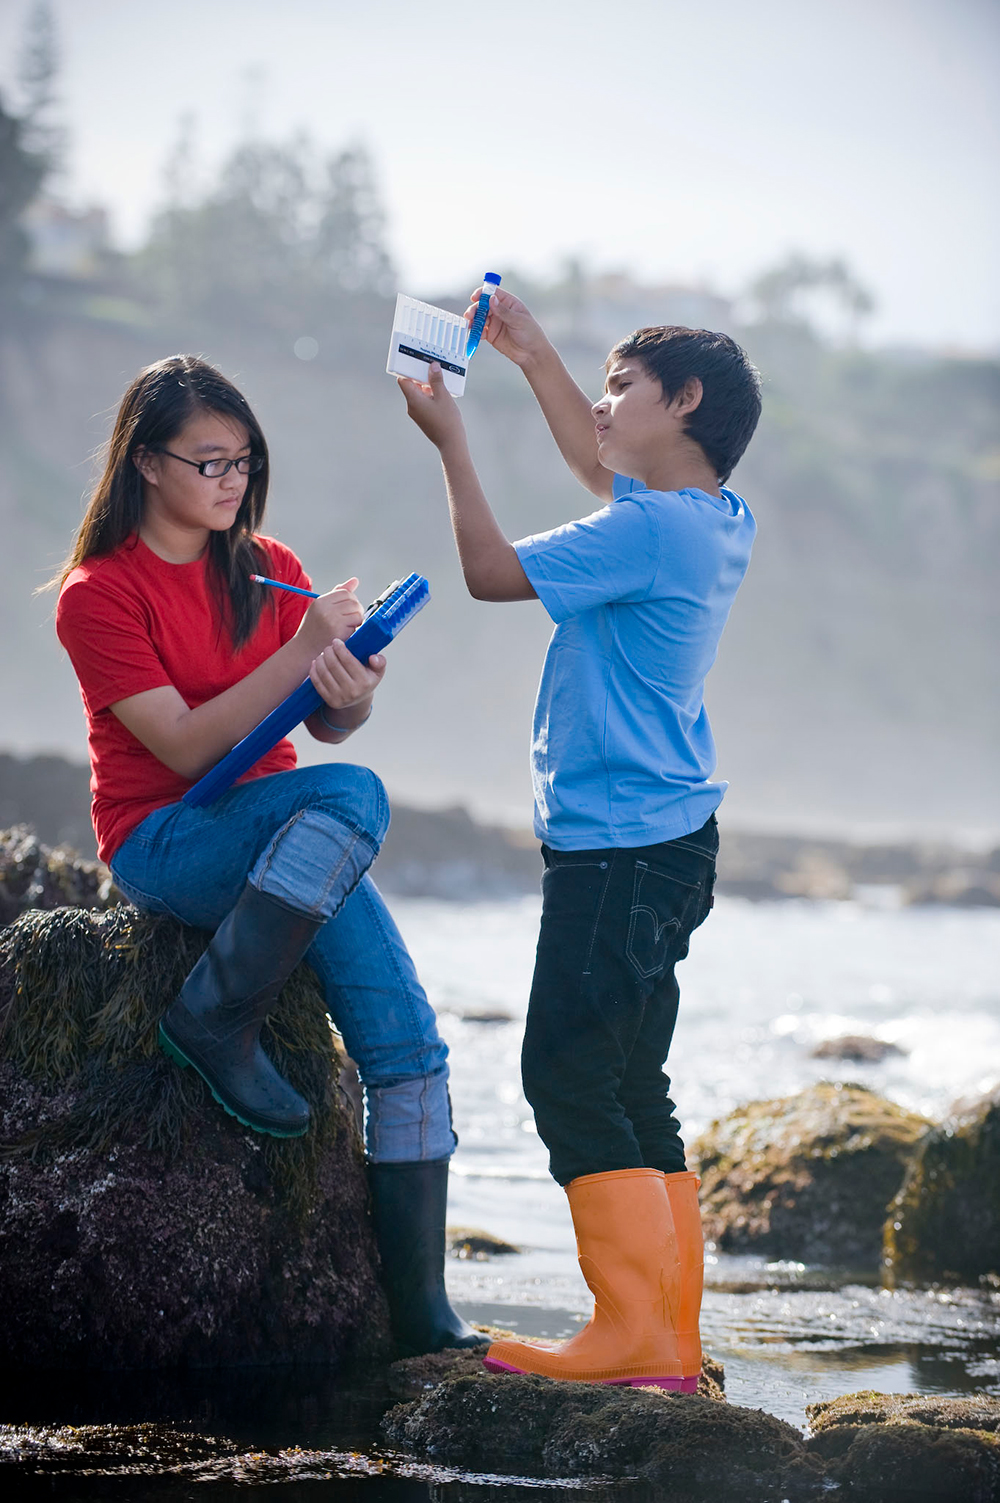 Students conducting field research. Photo credit: Ocean Discovery Institute